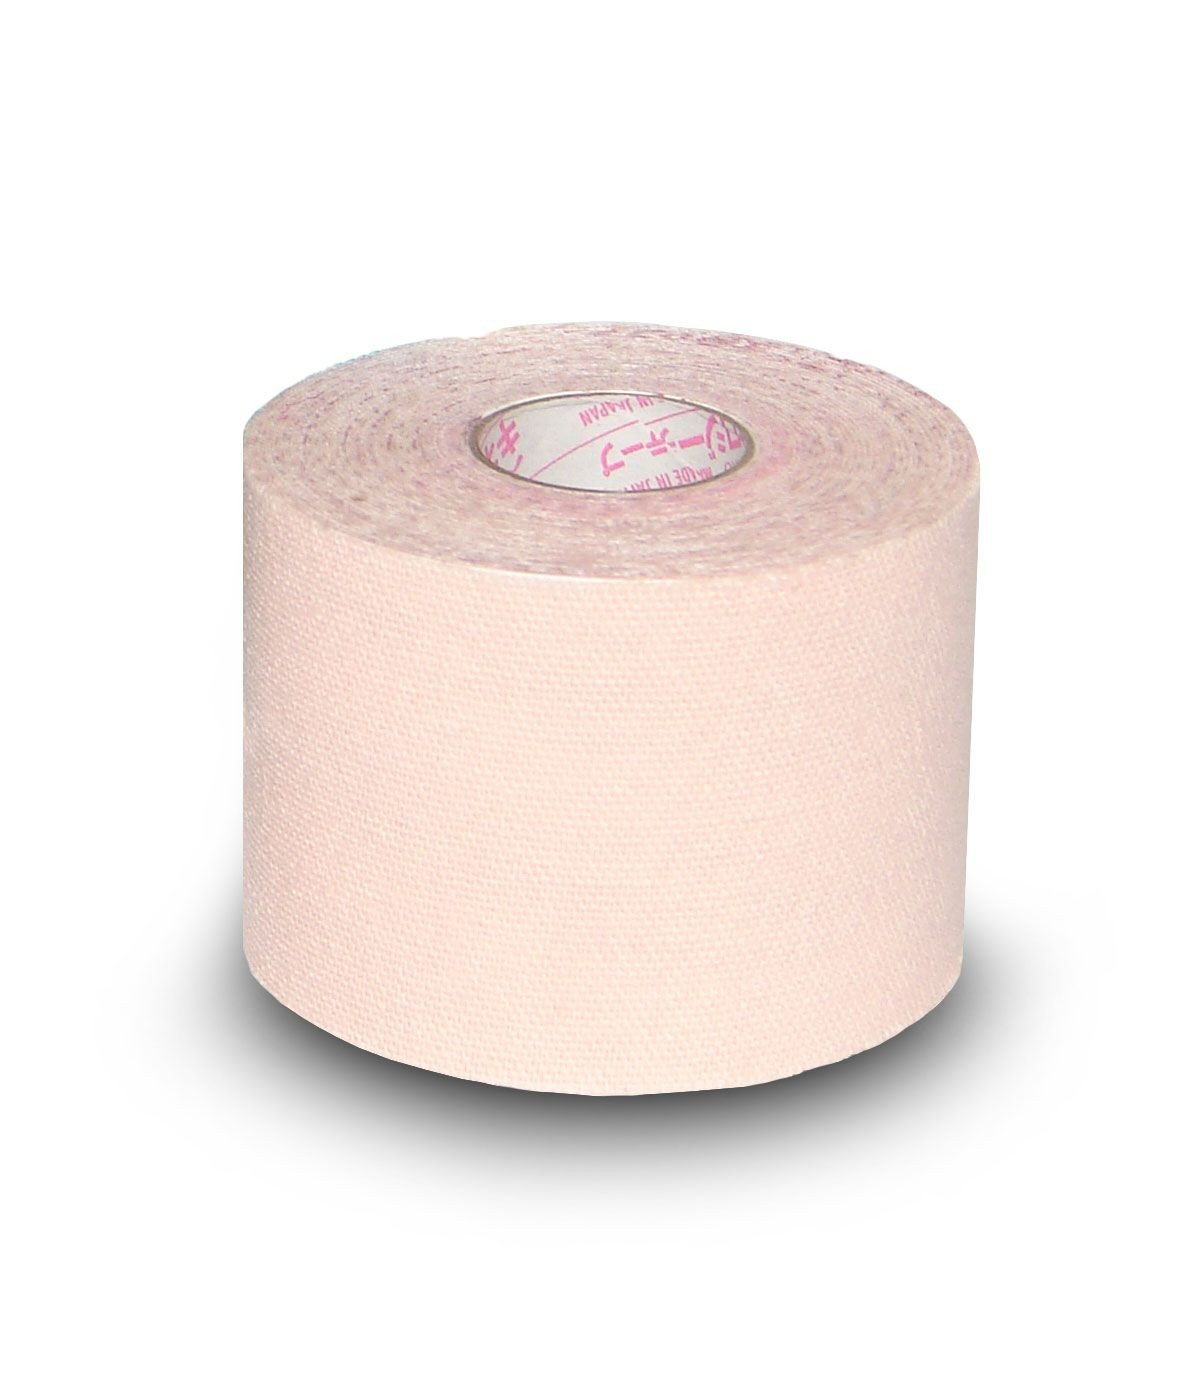 SpiderTech Gentle-Therapeutic Kinesiology Tape Roll for Hyper Sensitive and Radiated Skin 2''x16.4'50mmx5m